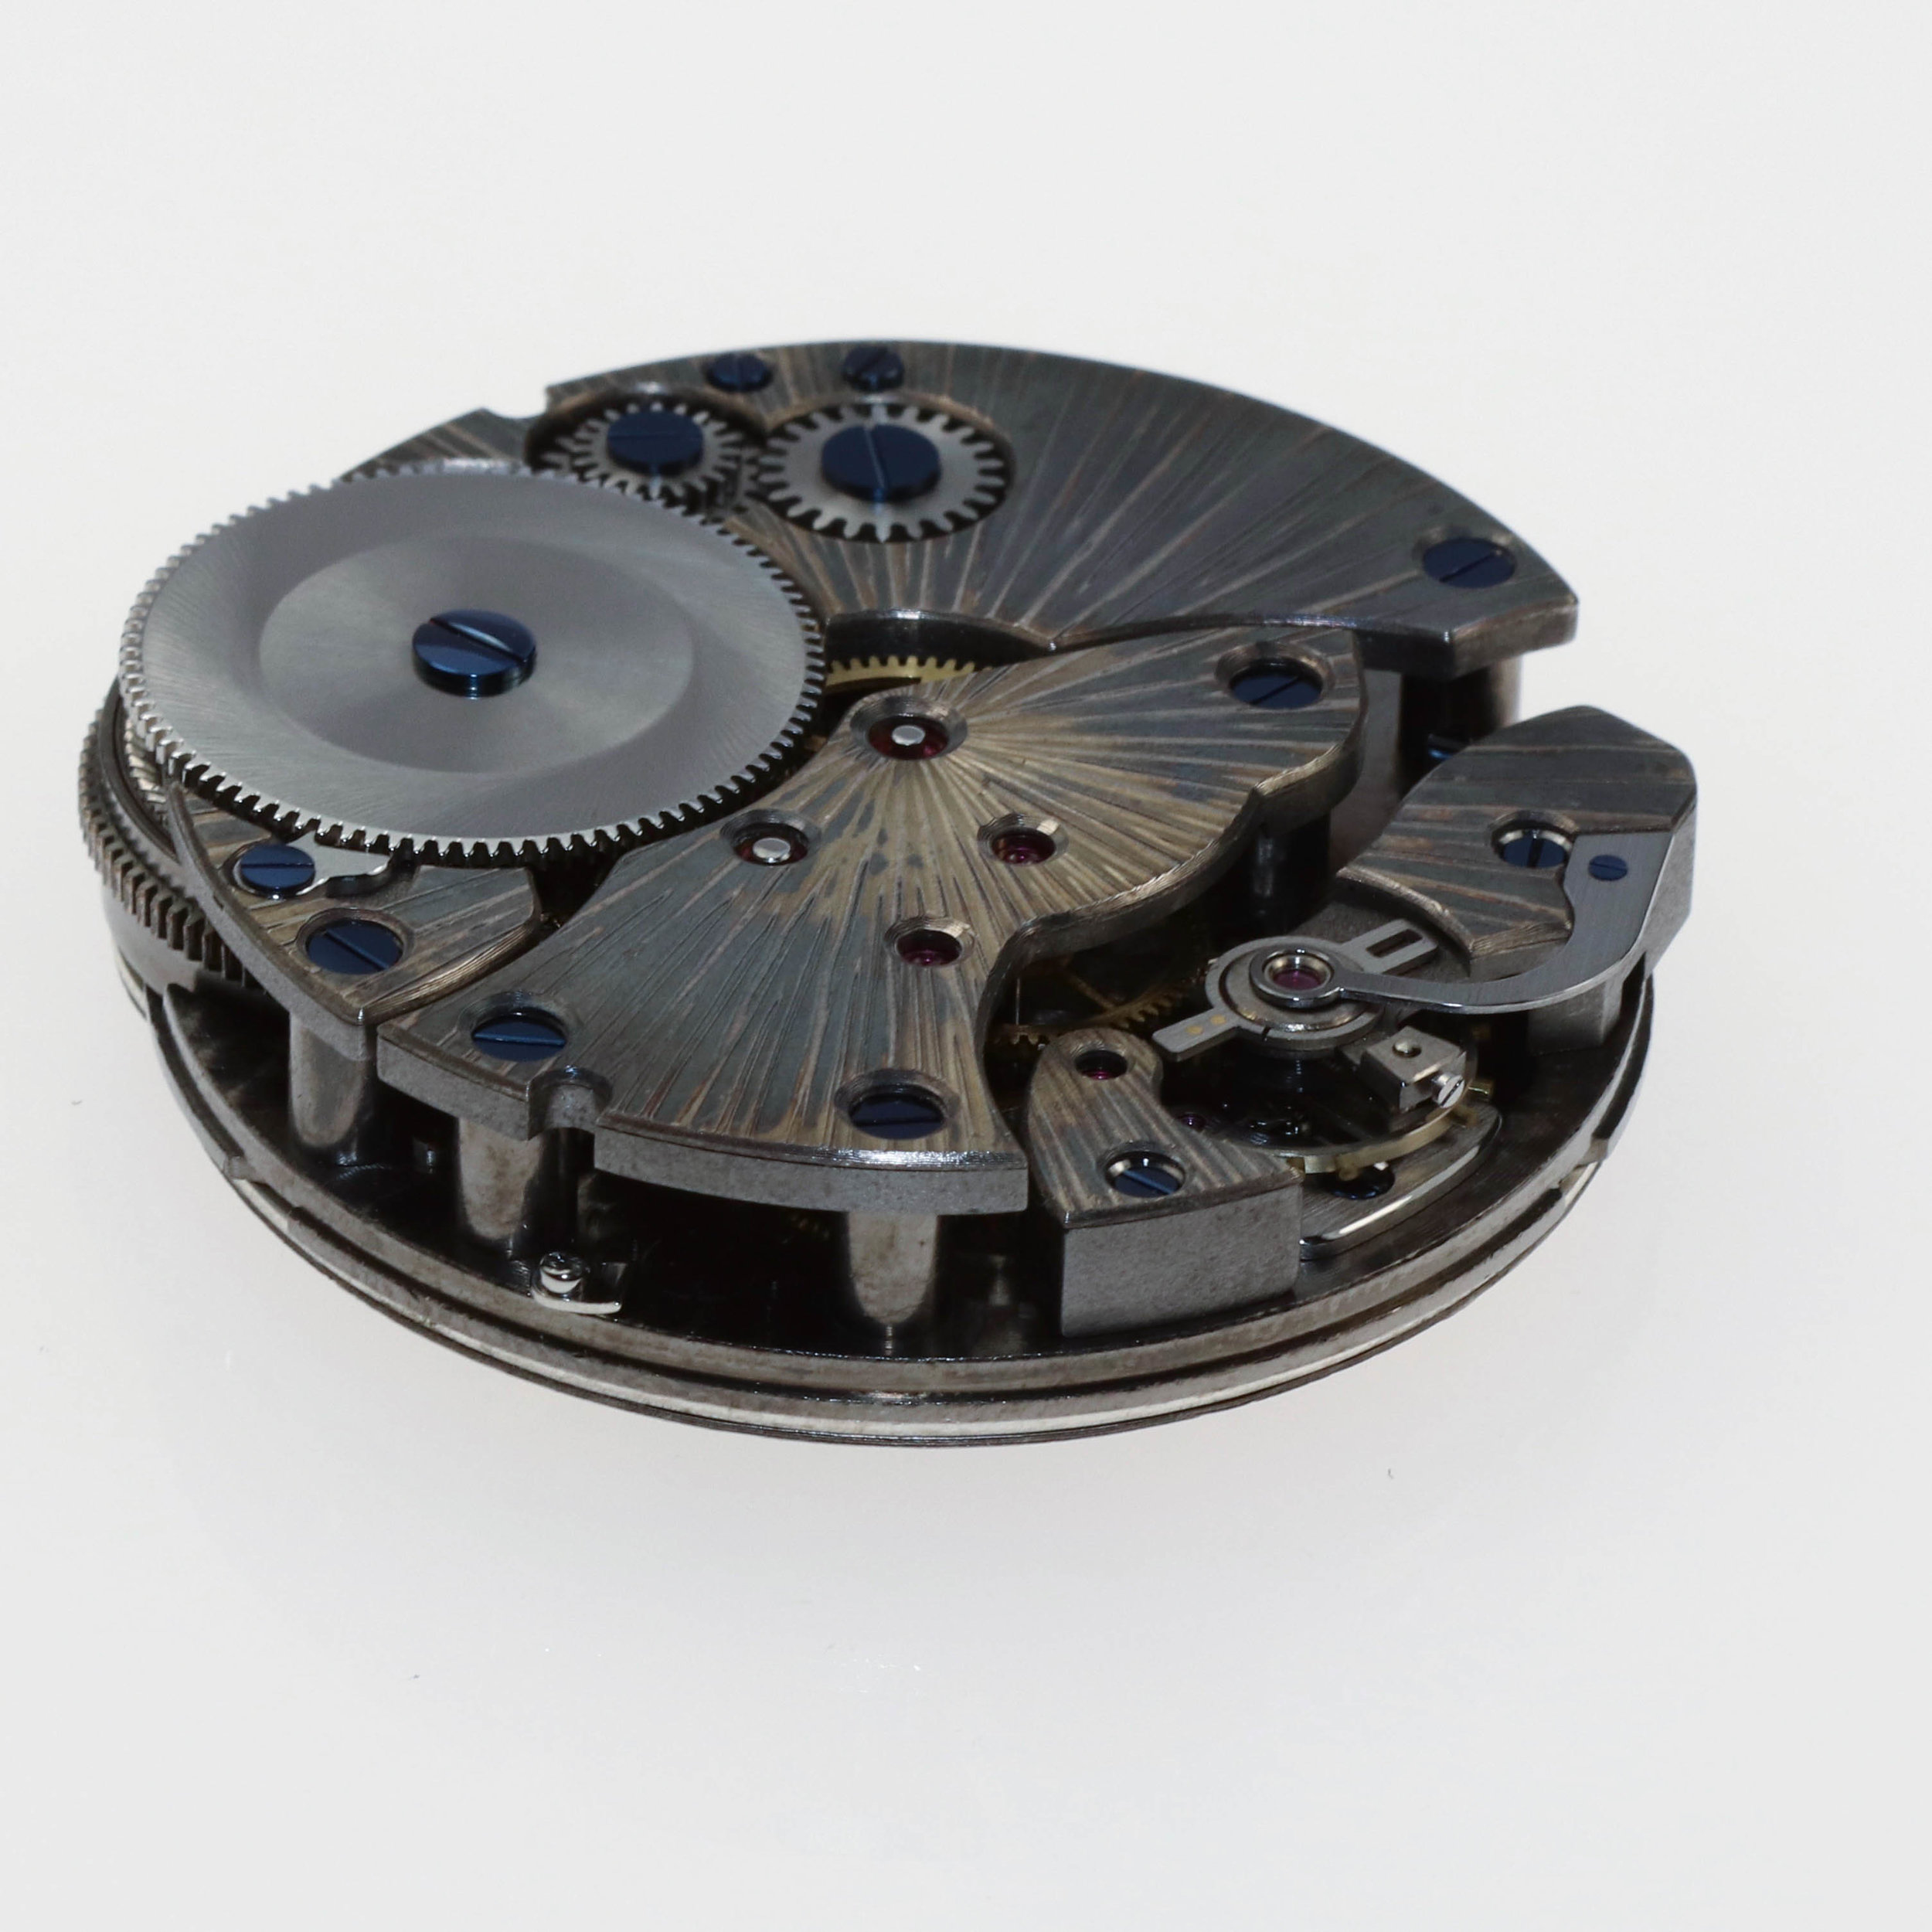 Complete view of the calibre, outside of the case from the bridge side